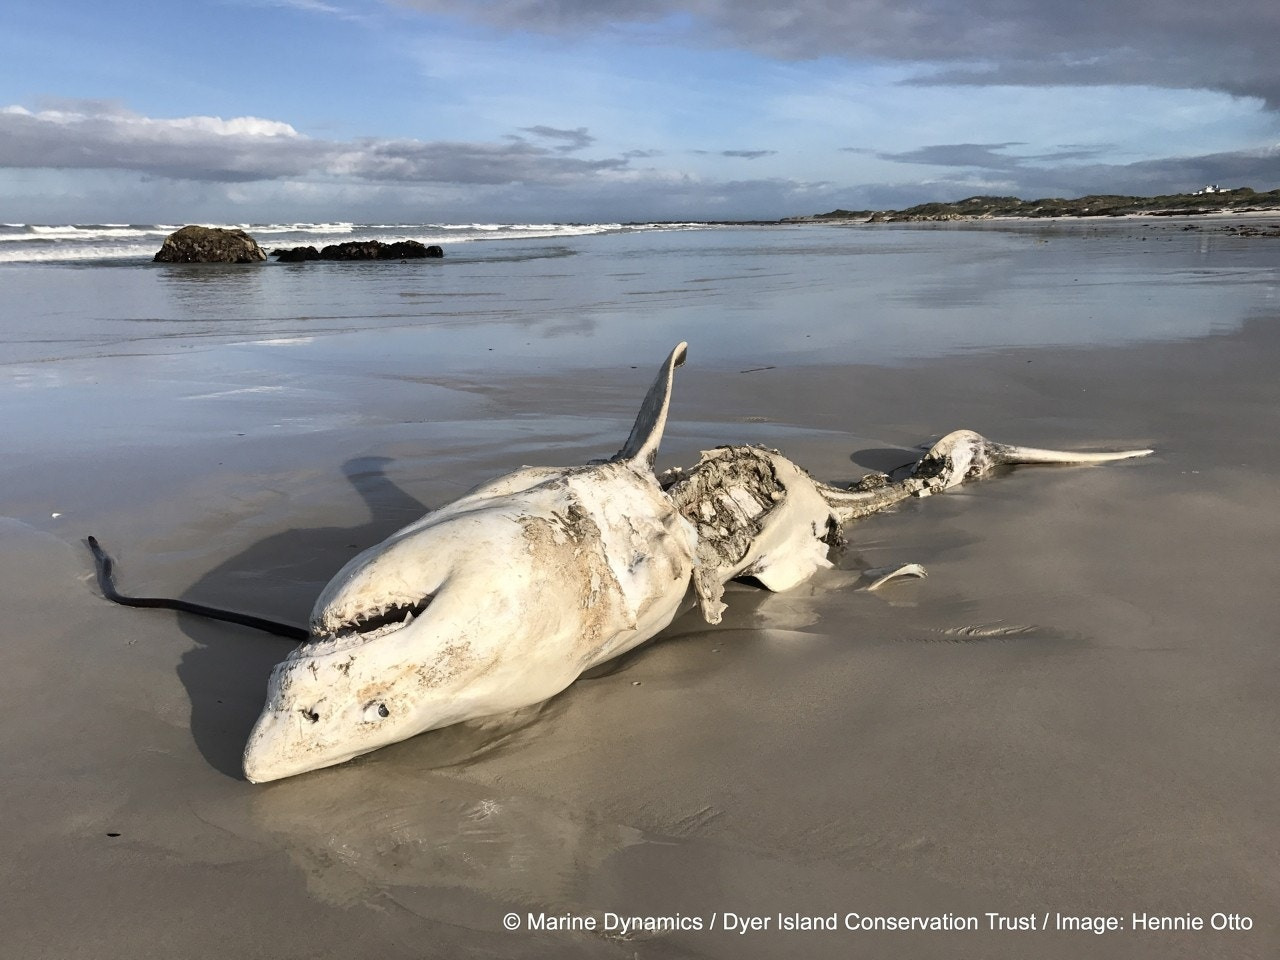 Shock as eviscerated great white shark washes up 'with liver surgically removed' by killer whales